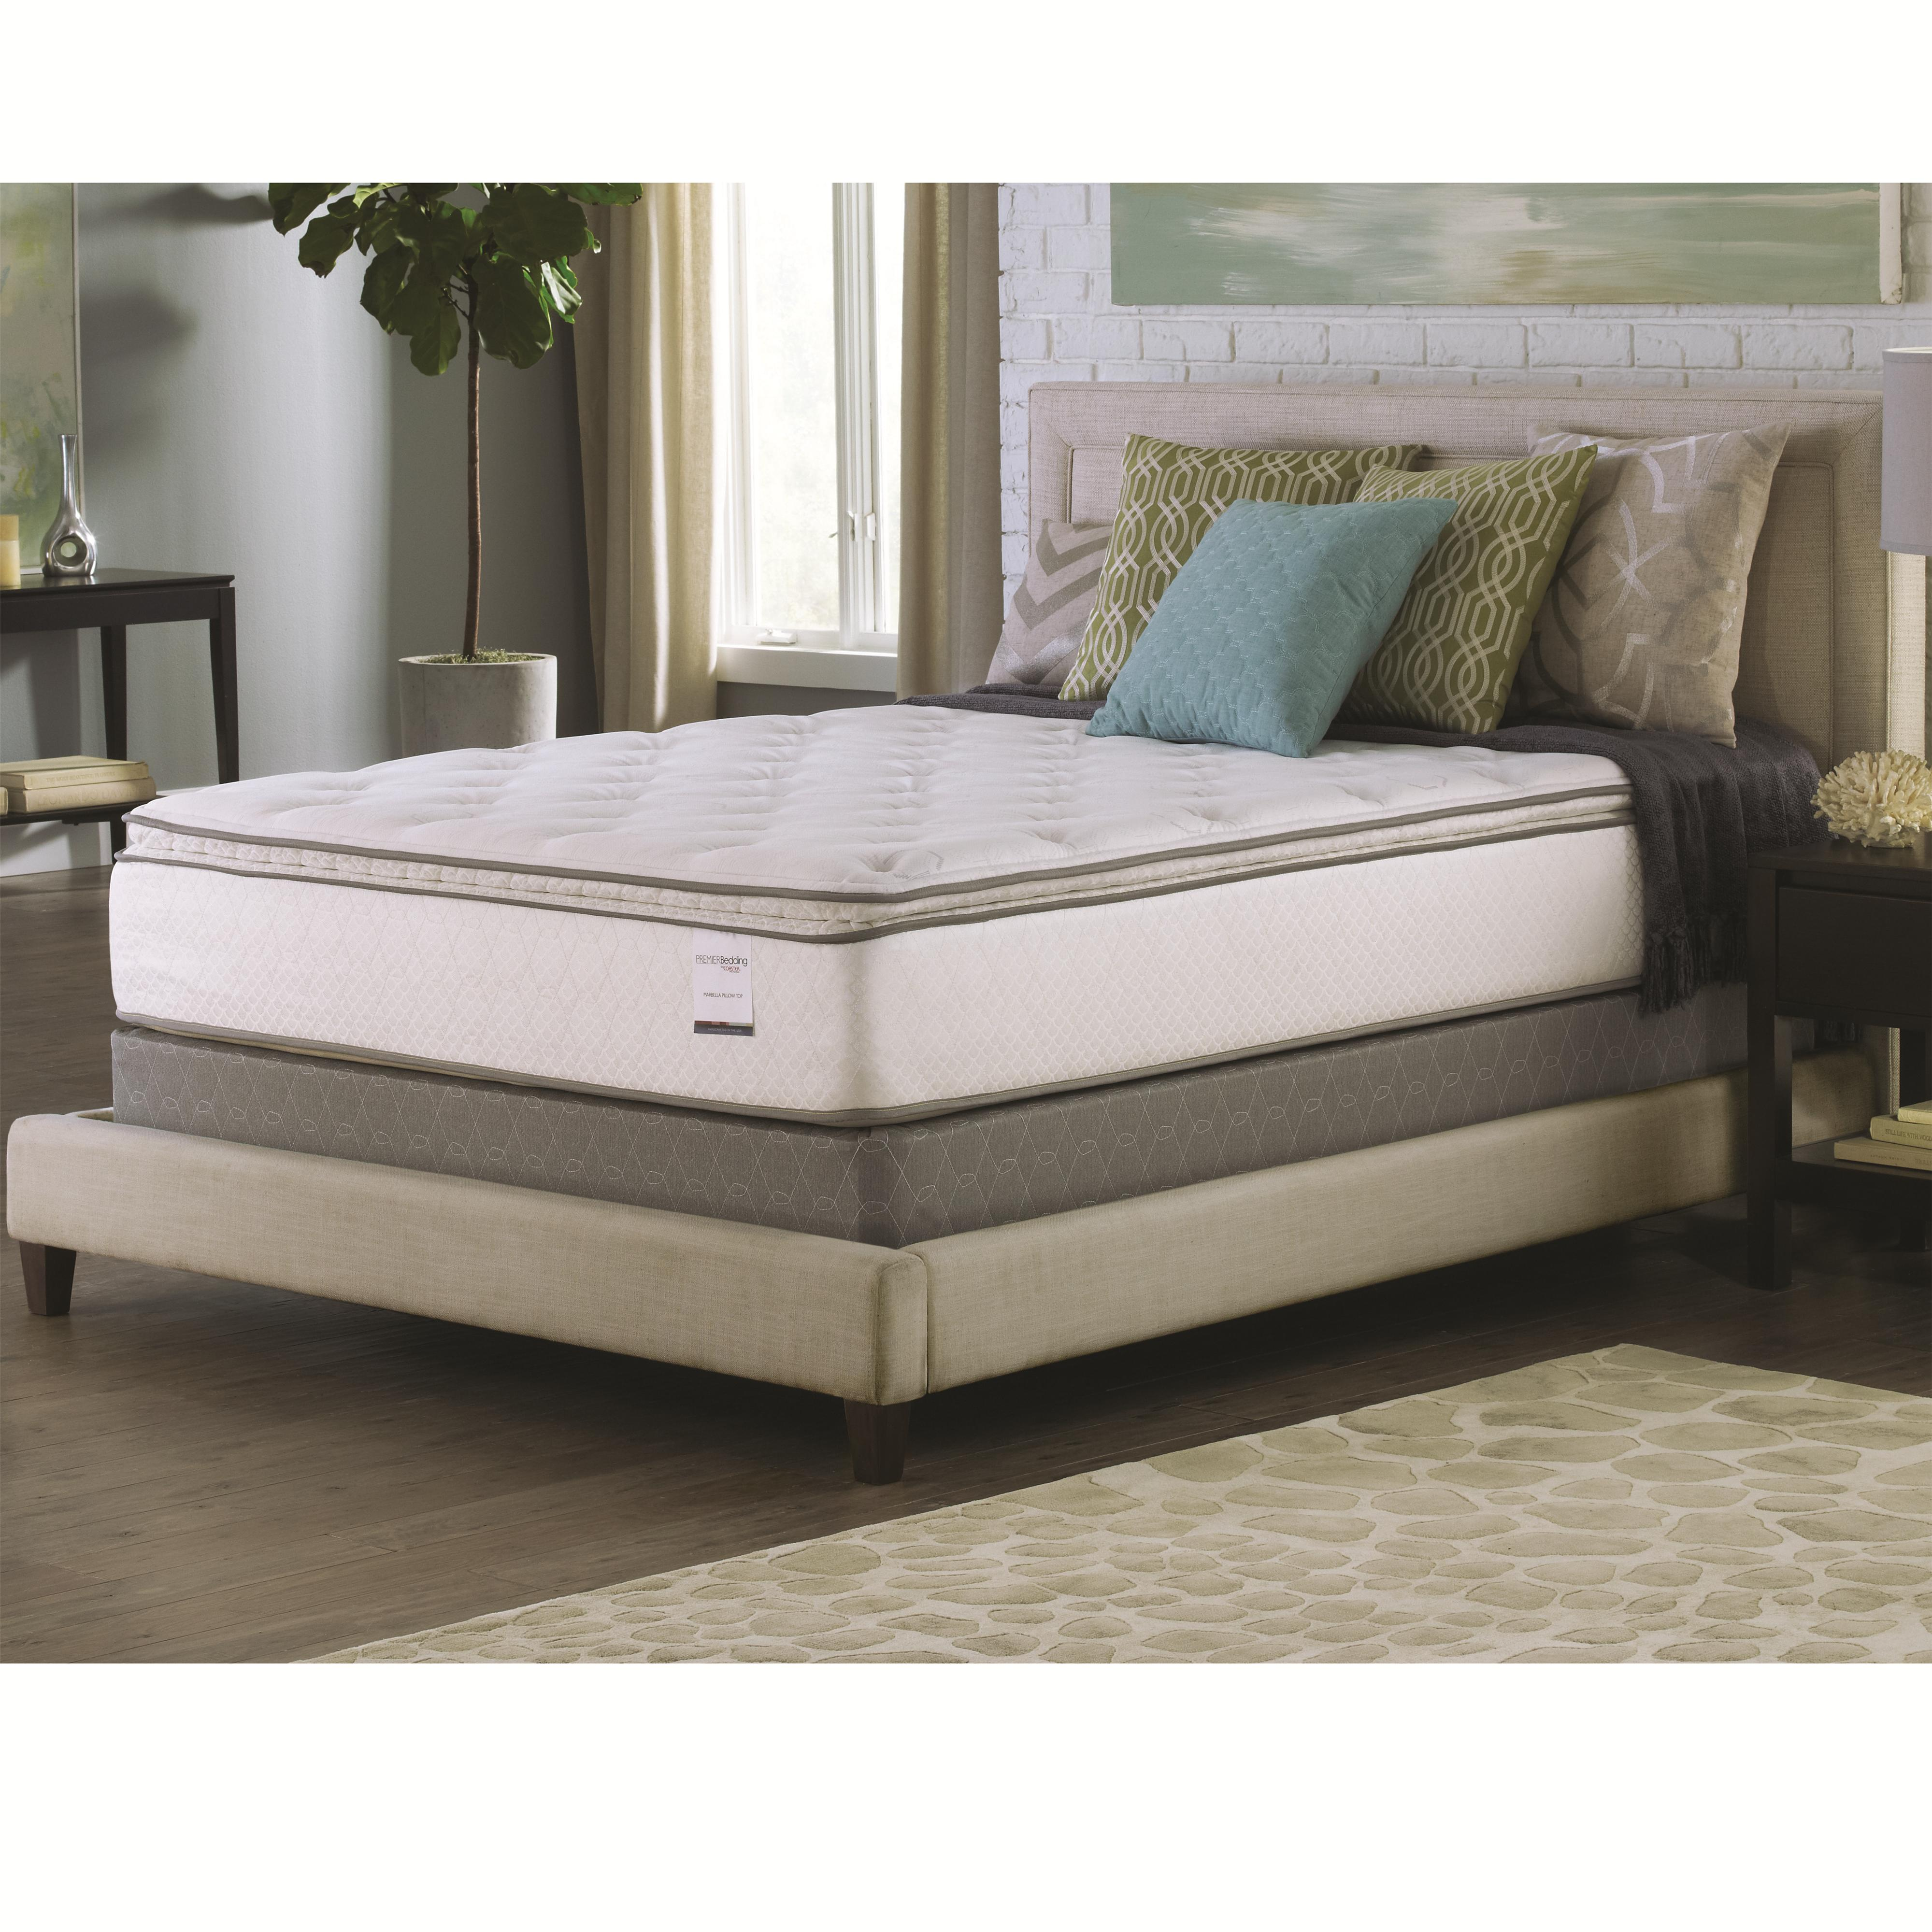 Marbella Mattress 13 5 Queen Pillow Top Mattress And Foundation Quality Furniture At